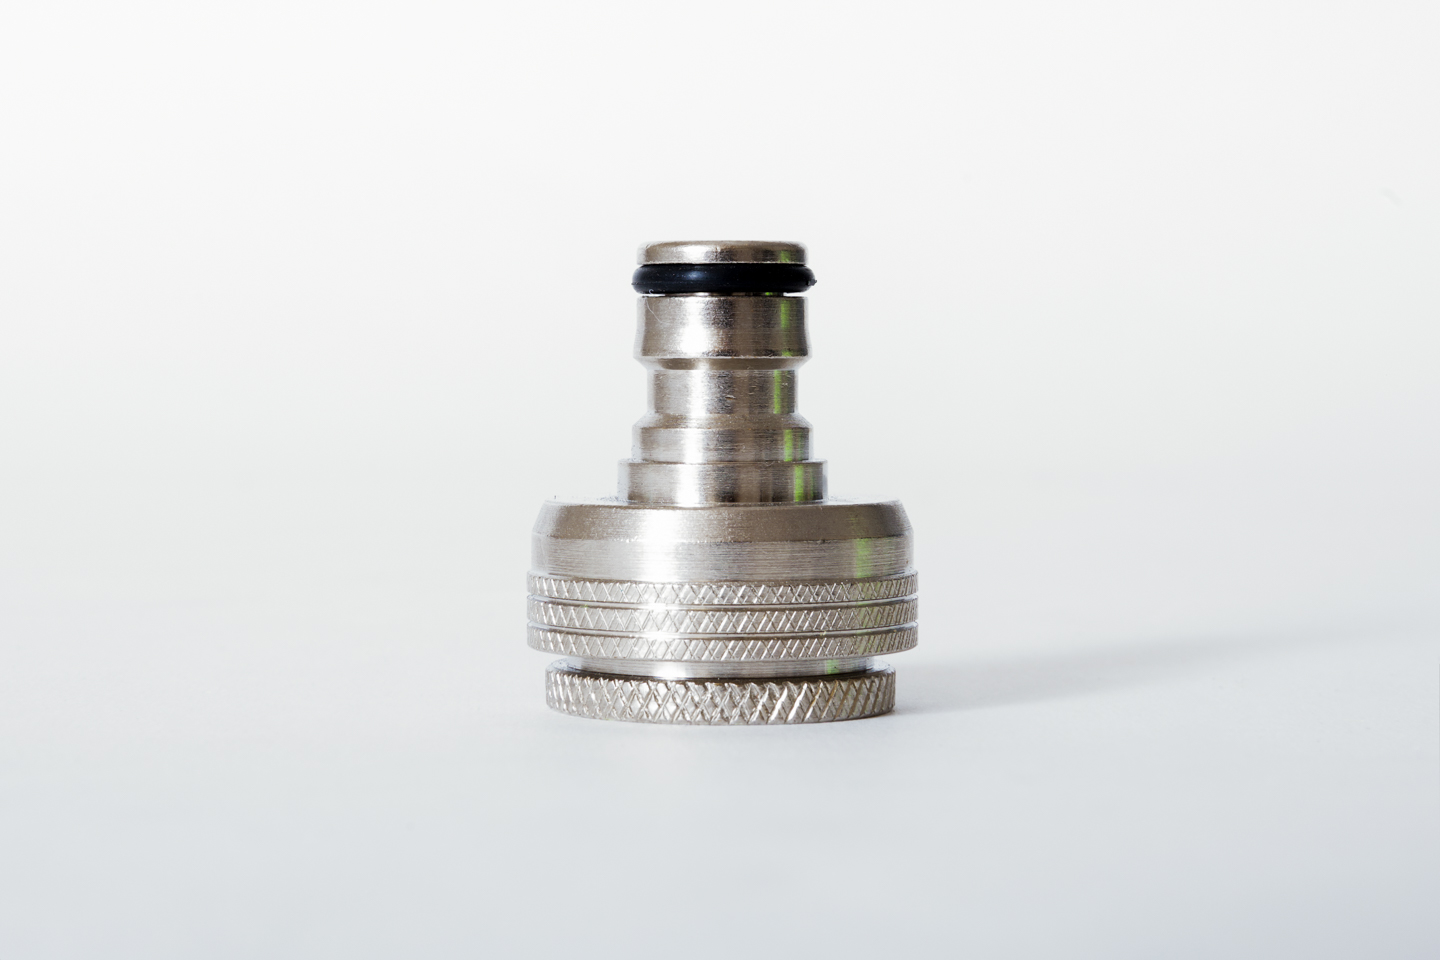 TAP CONNECTOR SNAP FITTING